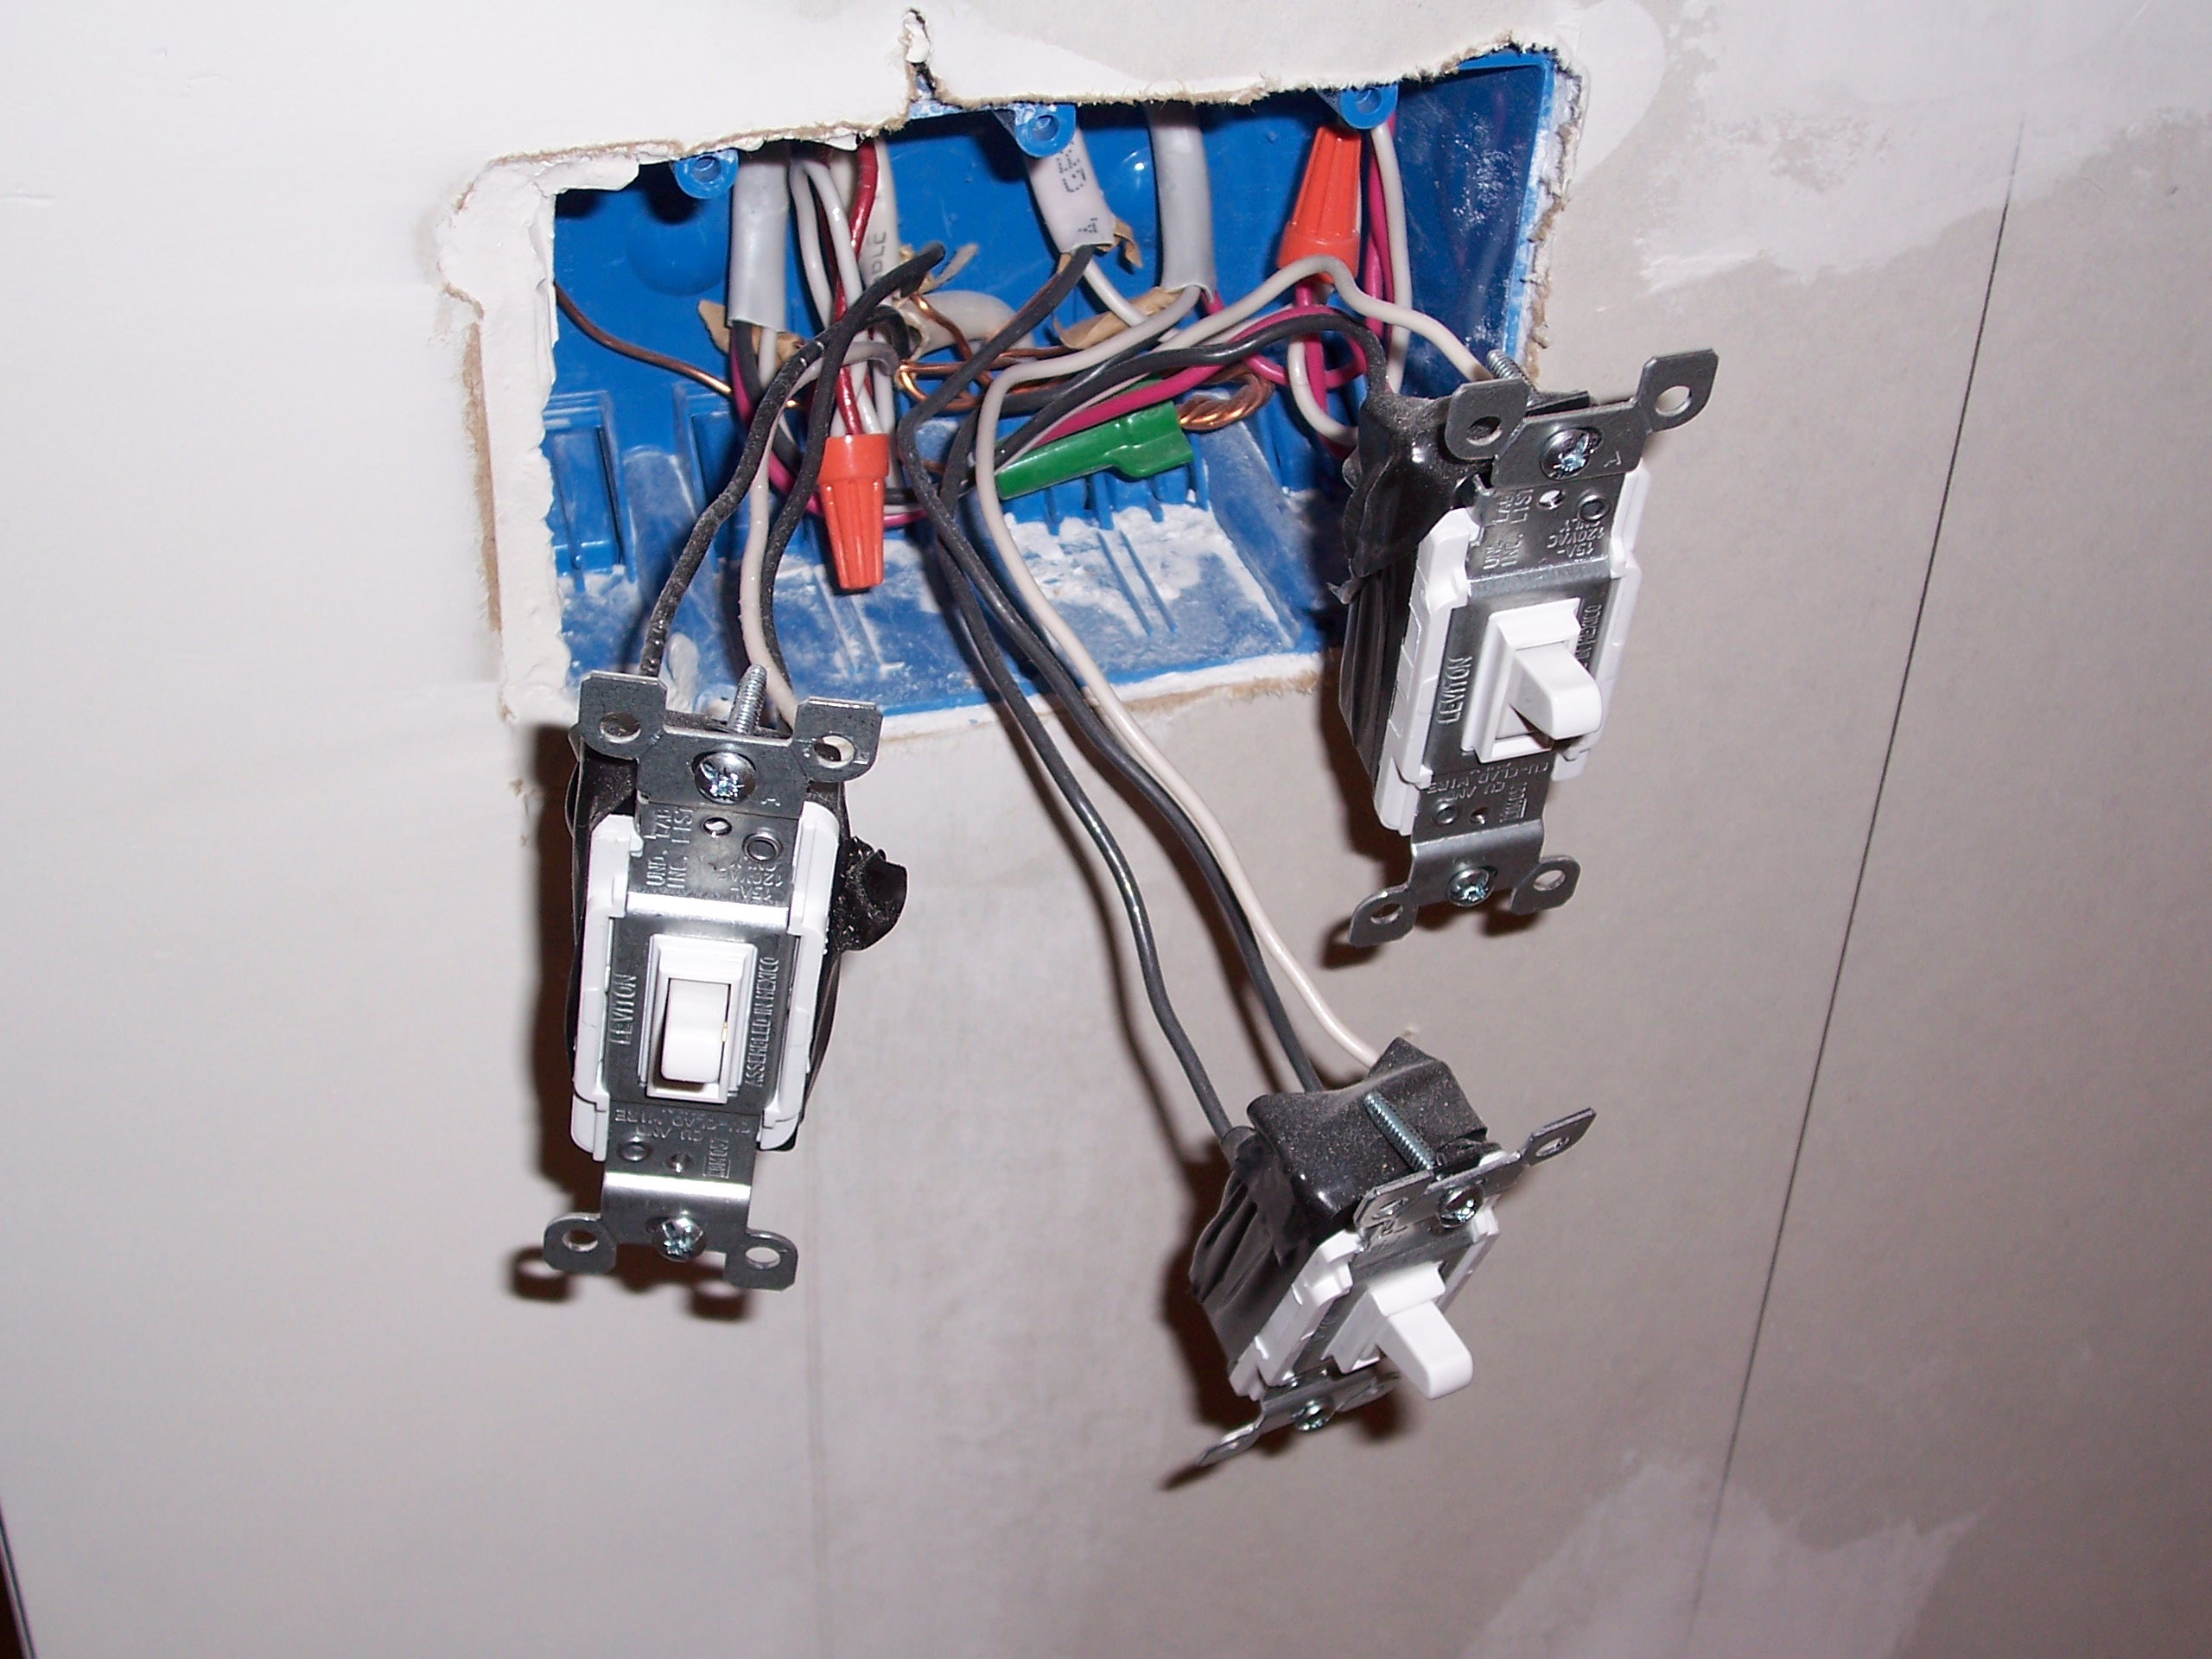 FileThree Light Switches With Exposed Wiringjpg Wikimedia Commons - Light switch wiring multiple